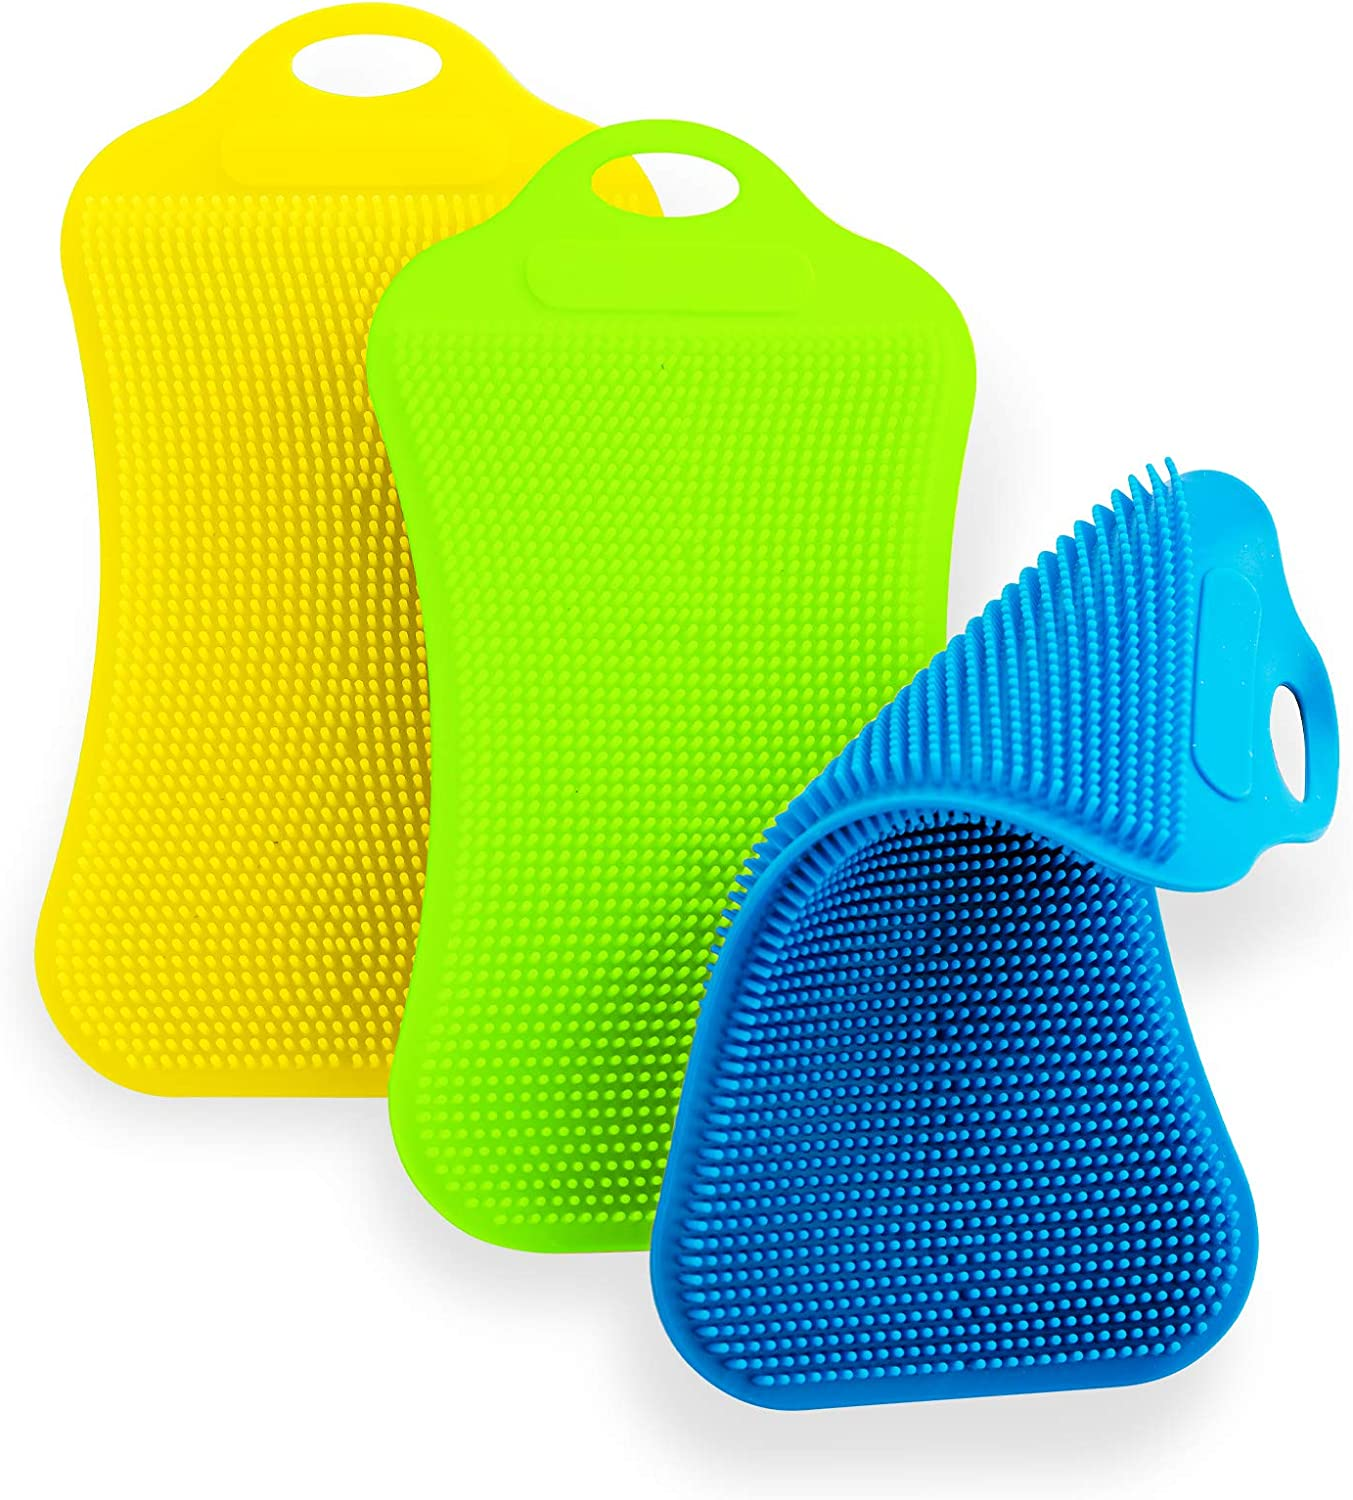 Silicone Sponges, Food-Grade Silicone Sponge, Double-Side Silicone Sponges for Dishes、Pots、Vegetables and Fruits, Reusable Cleaning Suppliers, BPA Free Premiul Kitchen Gadgets(3PACK)